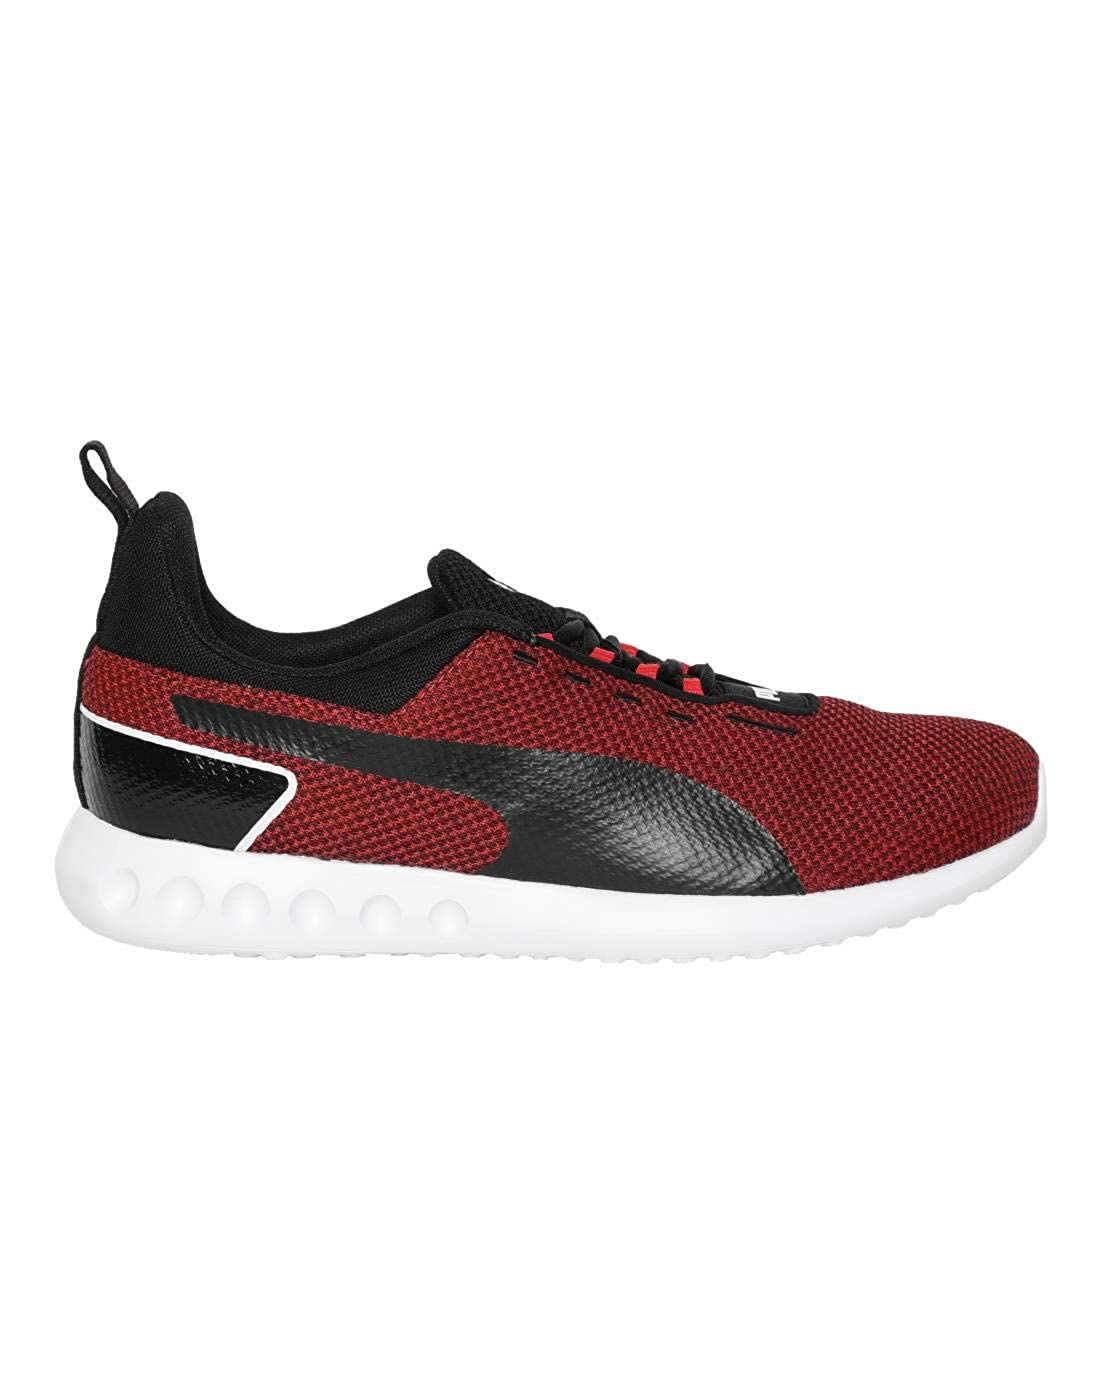 Concave Pro IDP Running Shoes